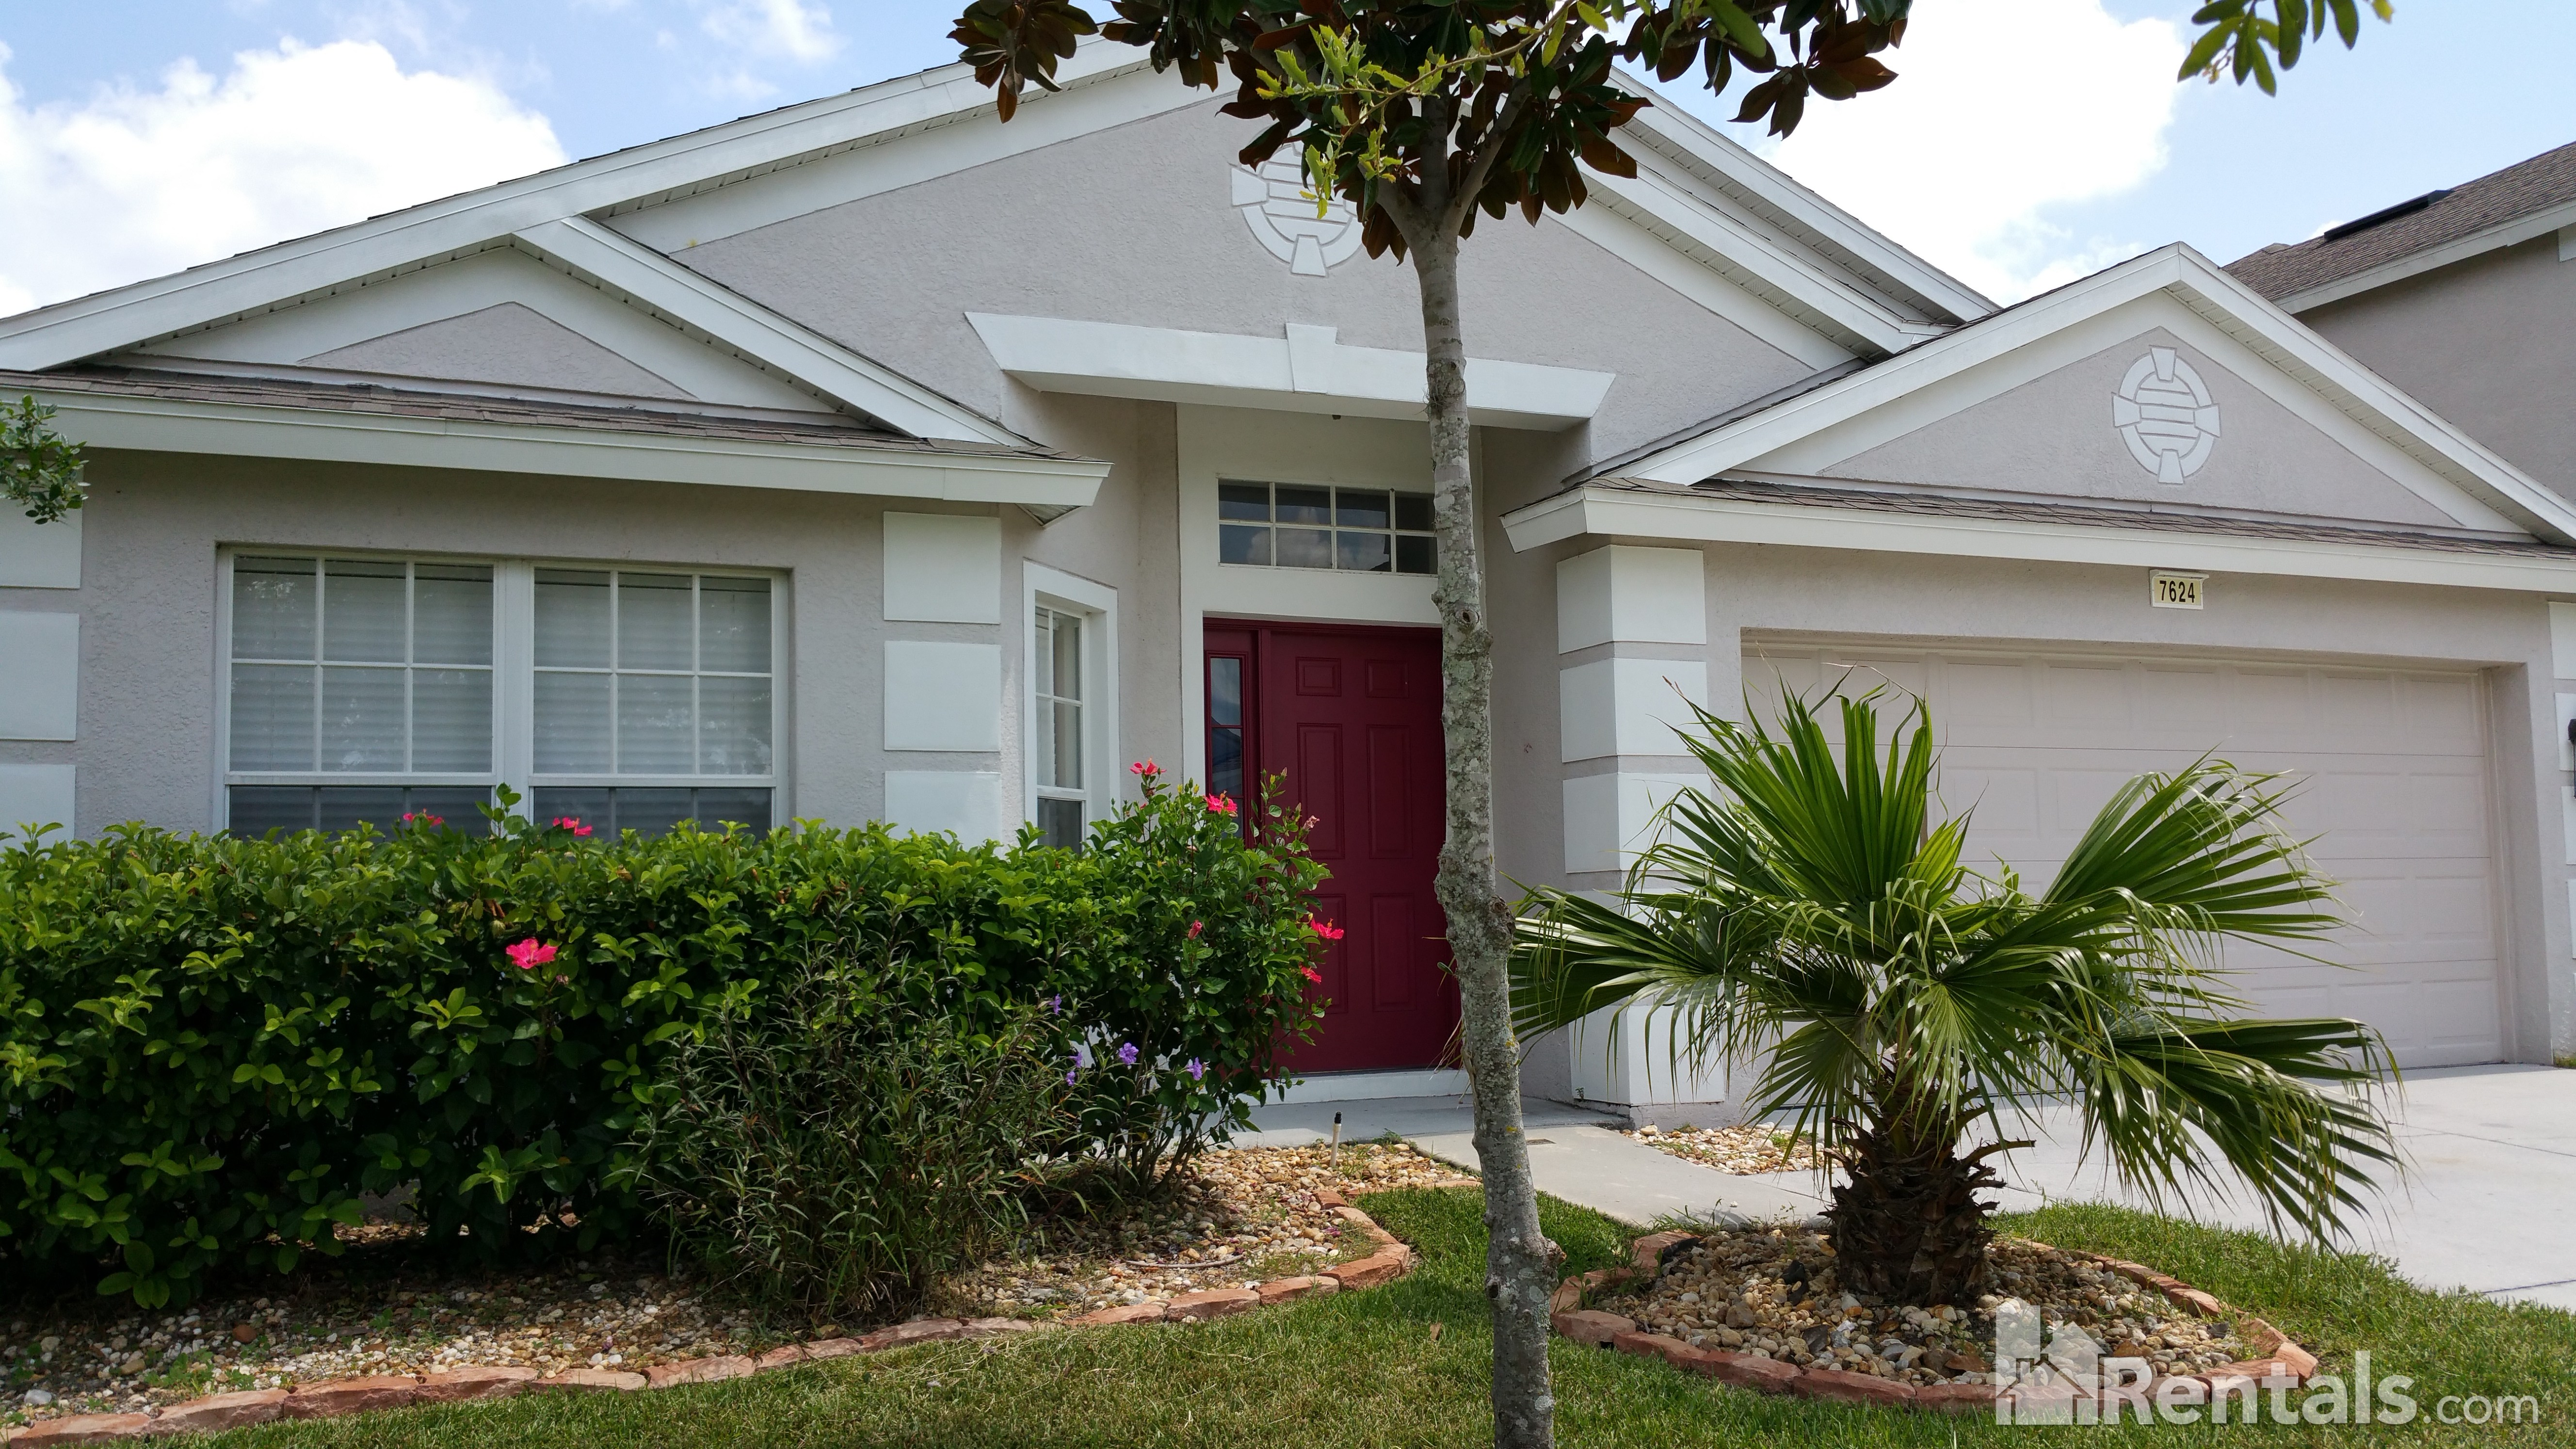 Apartments And Houses For Rent Near Me In Wesley Chapel